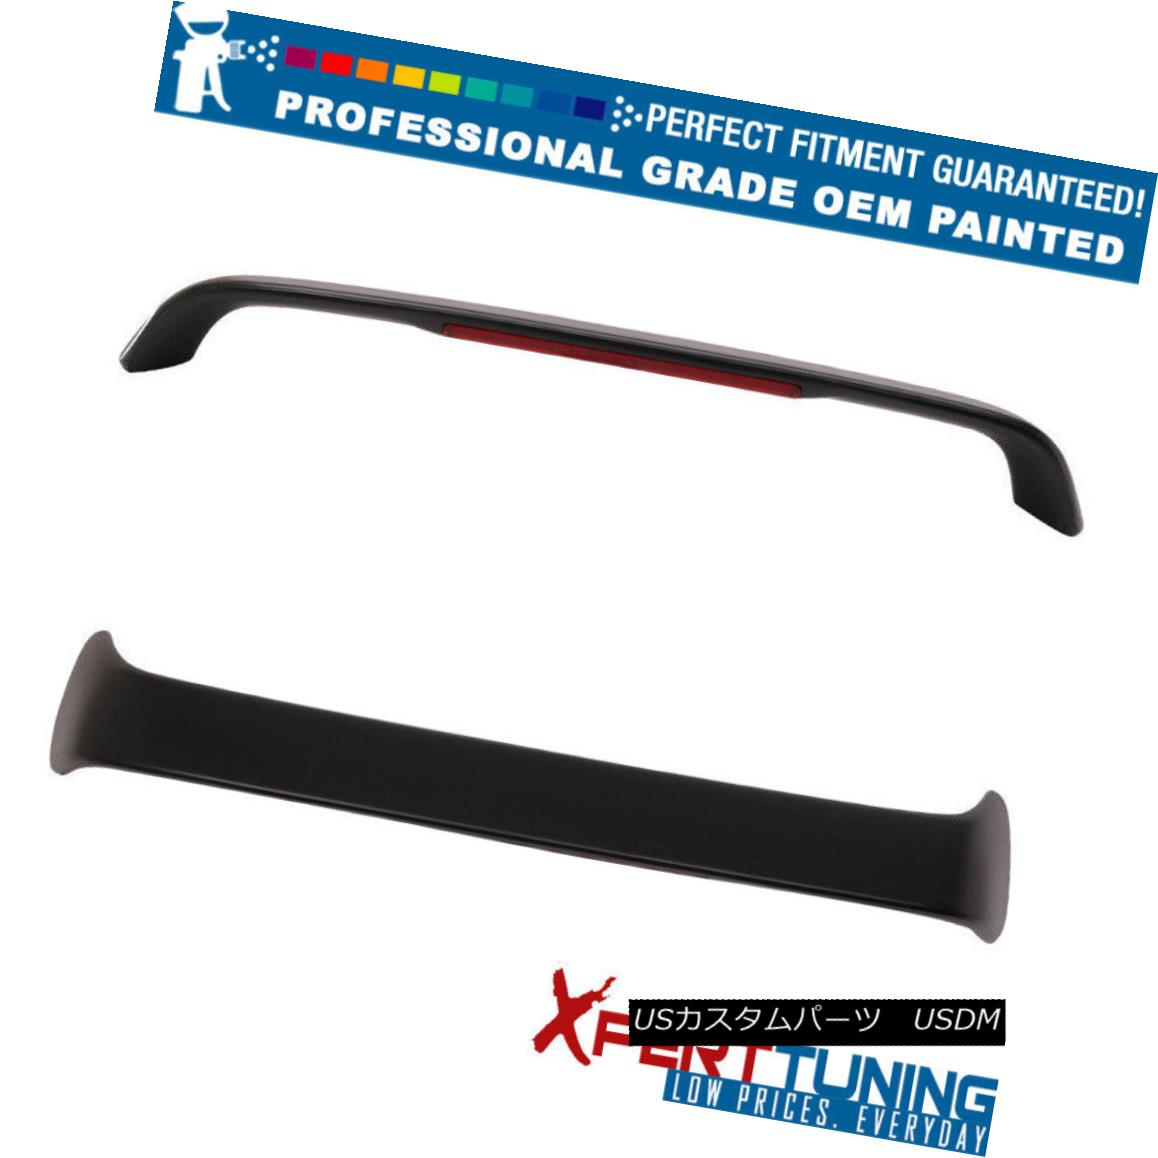 エアロパーツ Fits 94-01 Acura Integra Type R with LED Trunk Spoiler - OEM Painted Color 94-01 Acura IntegraタイプR、LEDトランク・スポイラー - OEM塗装カラー